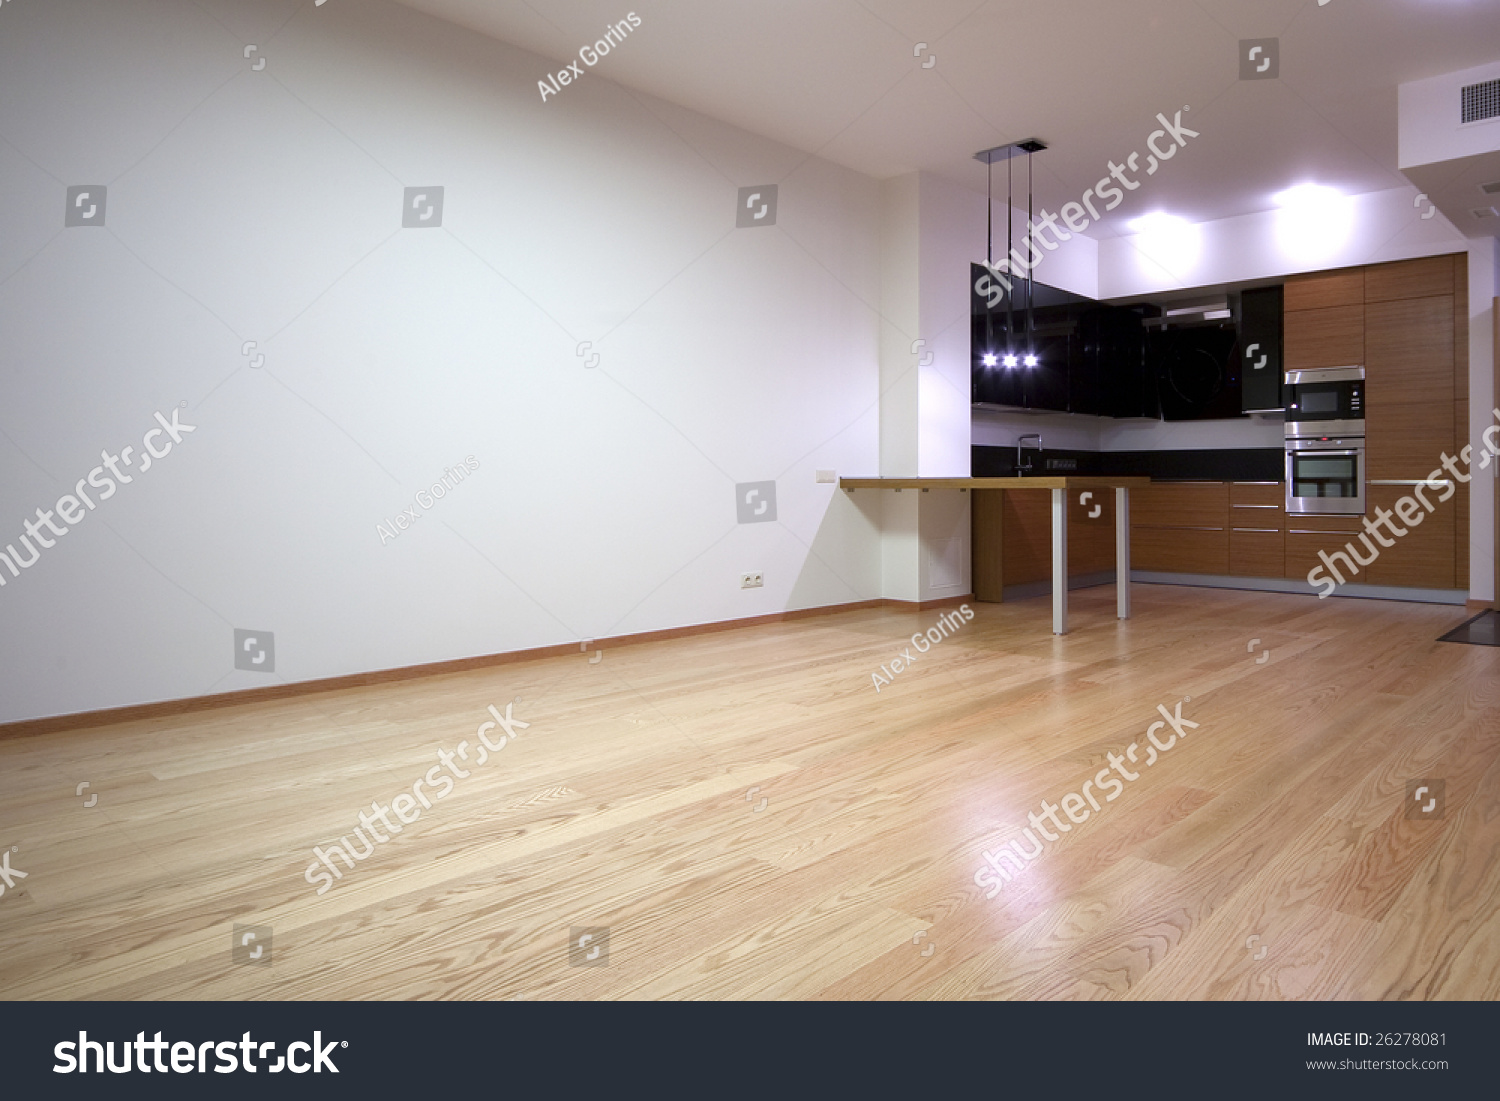 Empty Kitchen Wall Empty Living Room Builtin Kitchen Stock Photo 26278081 Shutterstock